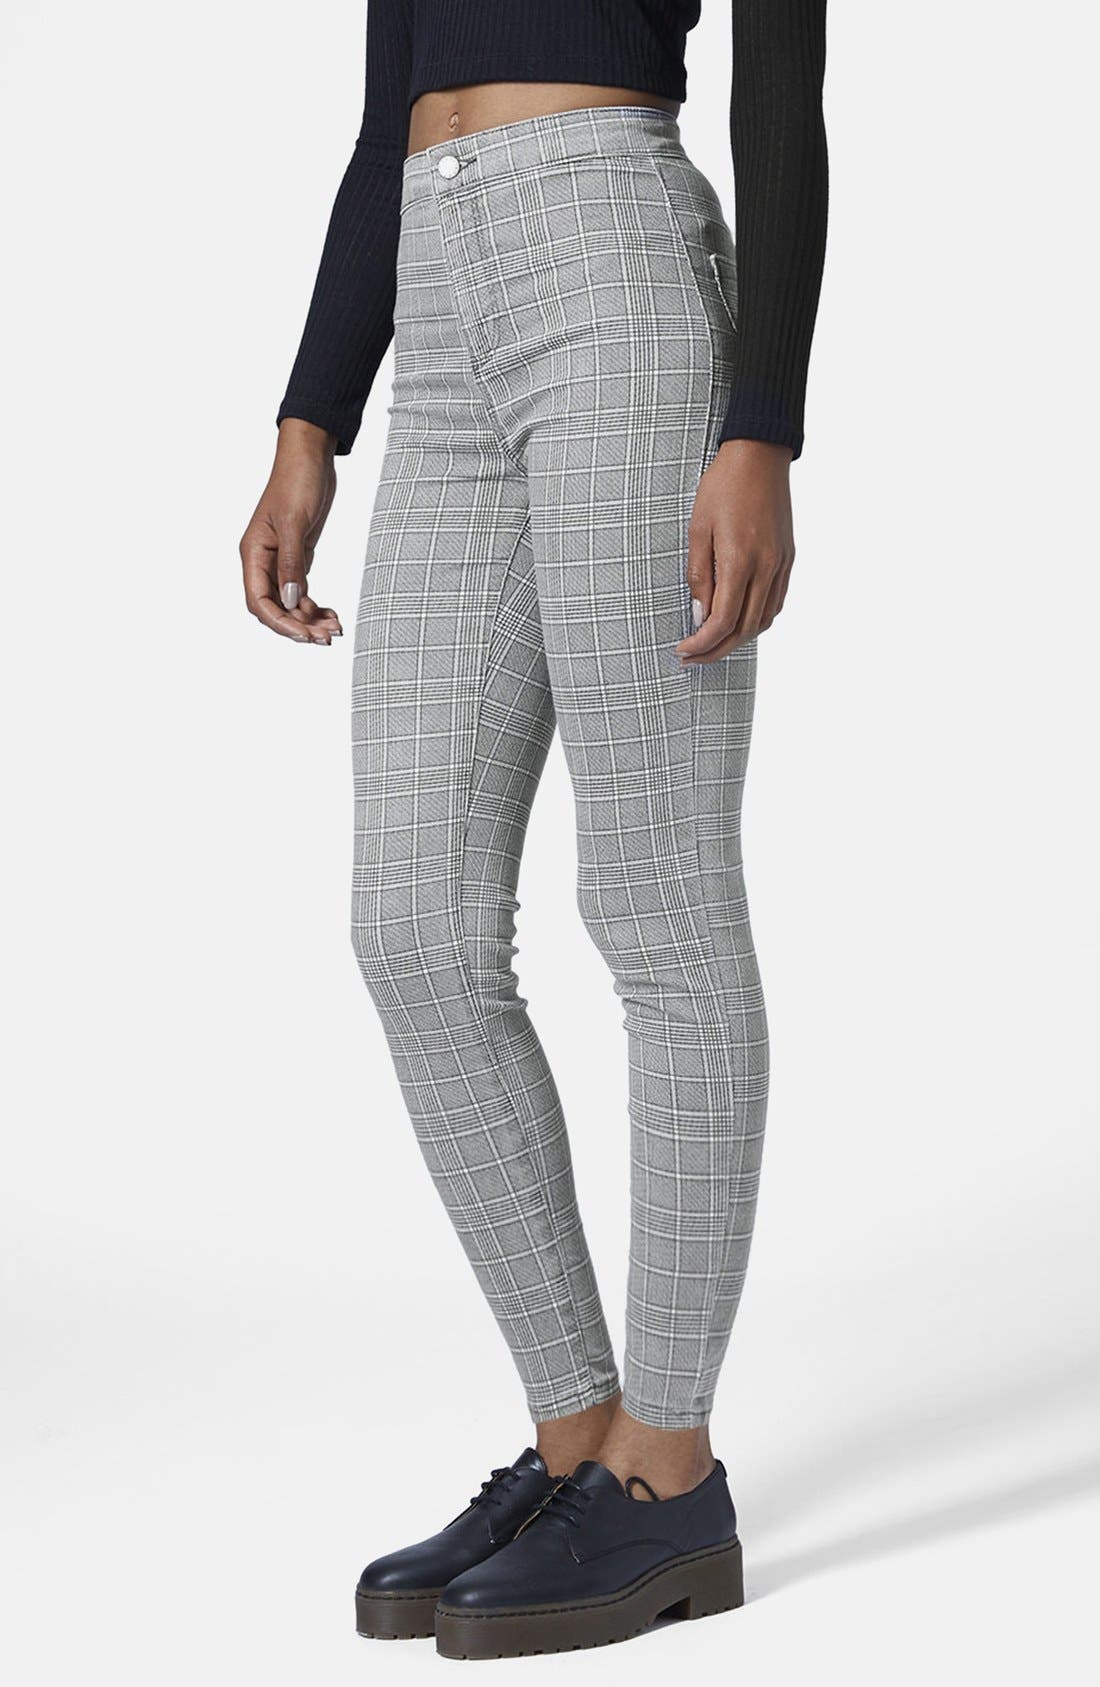 Alternate Image 1 Selected - Topshop Moto 'Joni' Prince of Wales Plaid High Rise Skinny Jeans (Regular & Short)